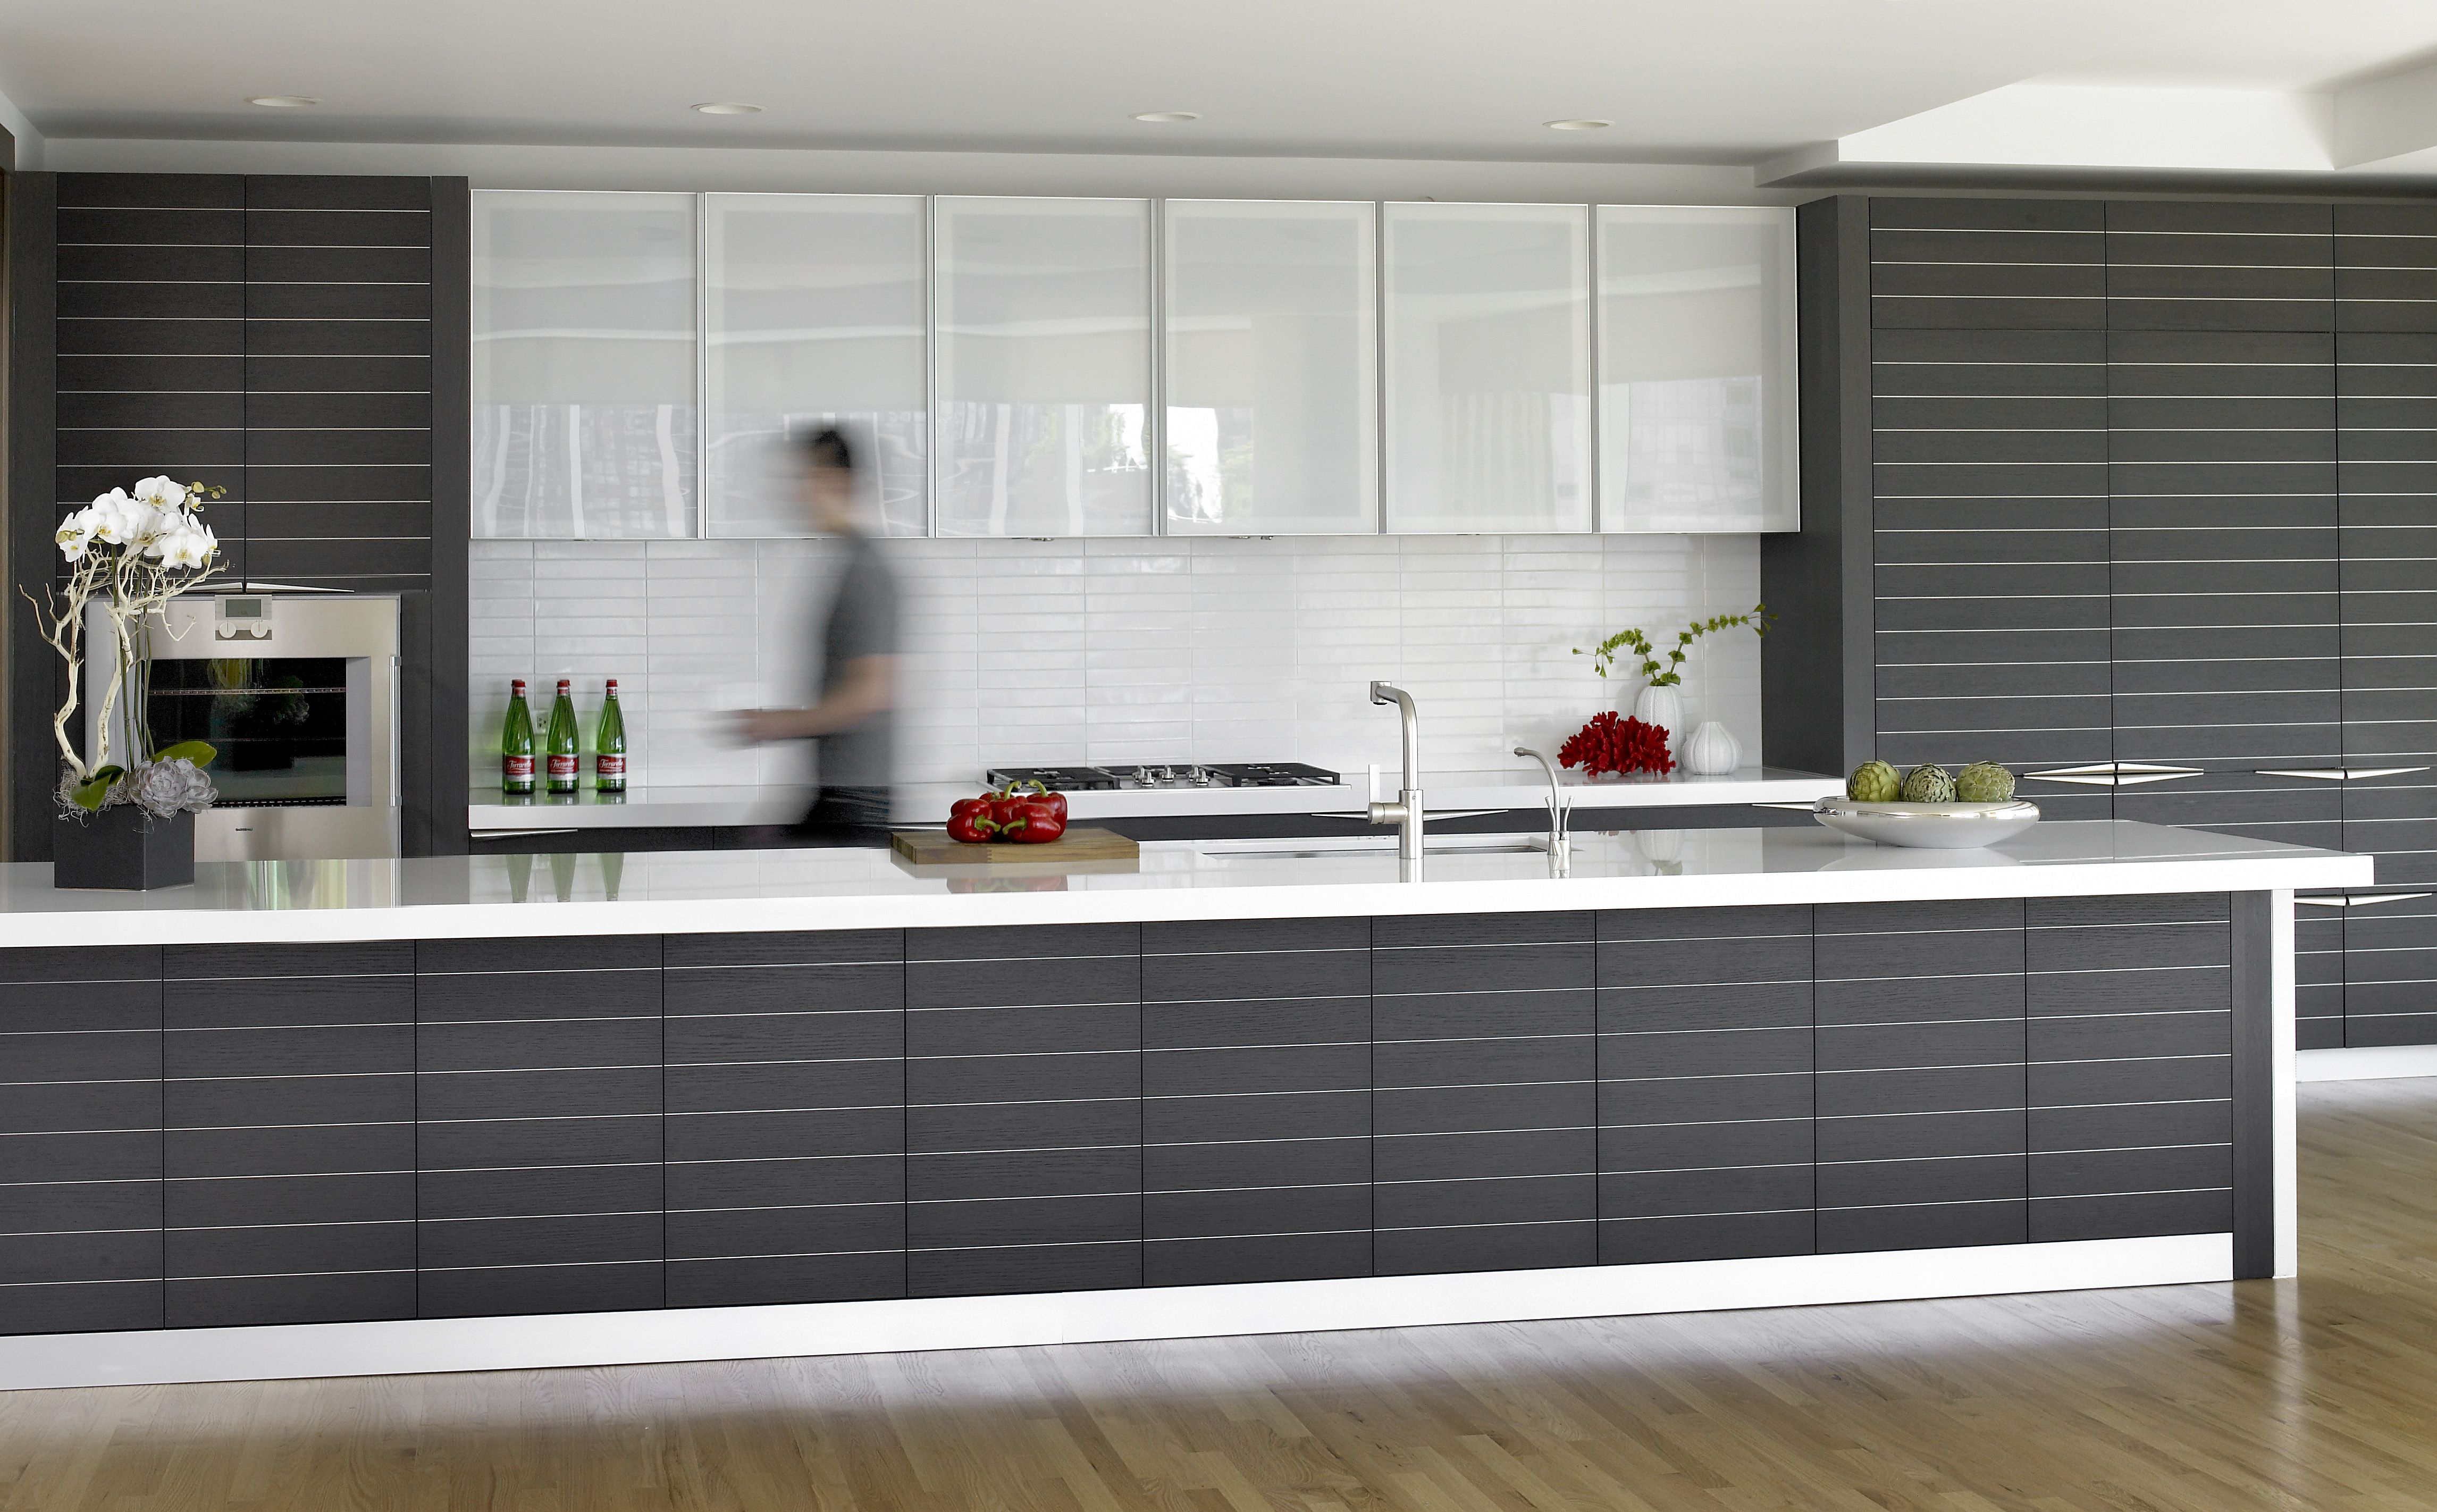 Downtown Chicago Glass Kitchen Cabinets European Kitchen Cabinets Glass Kitchen Cabinet Doors